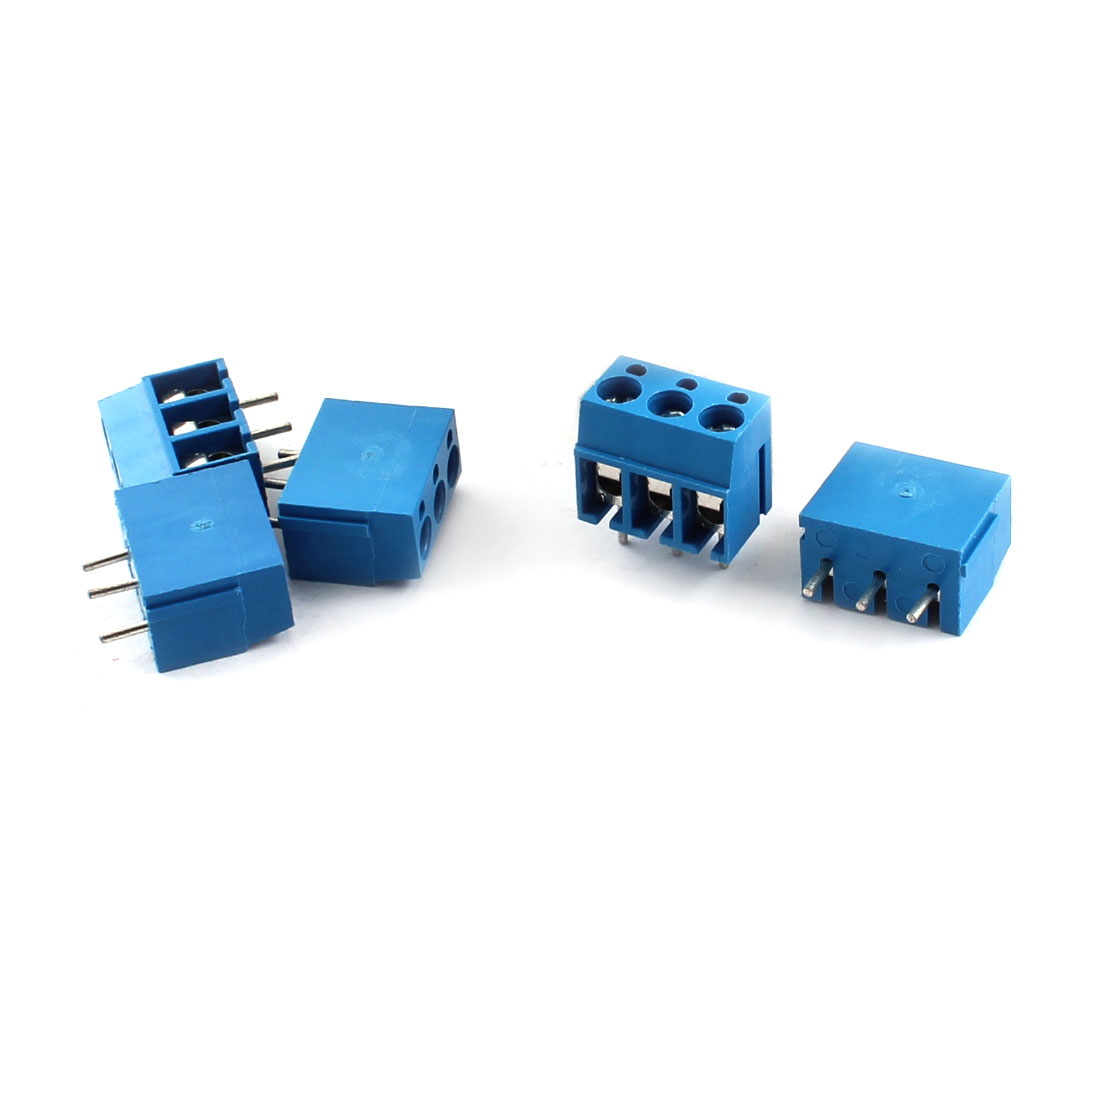 5Pcs 5.08mm 3 Way PCB Screw Terminal Block 300V 16A for 14-22AWG Wire